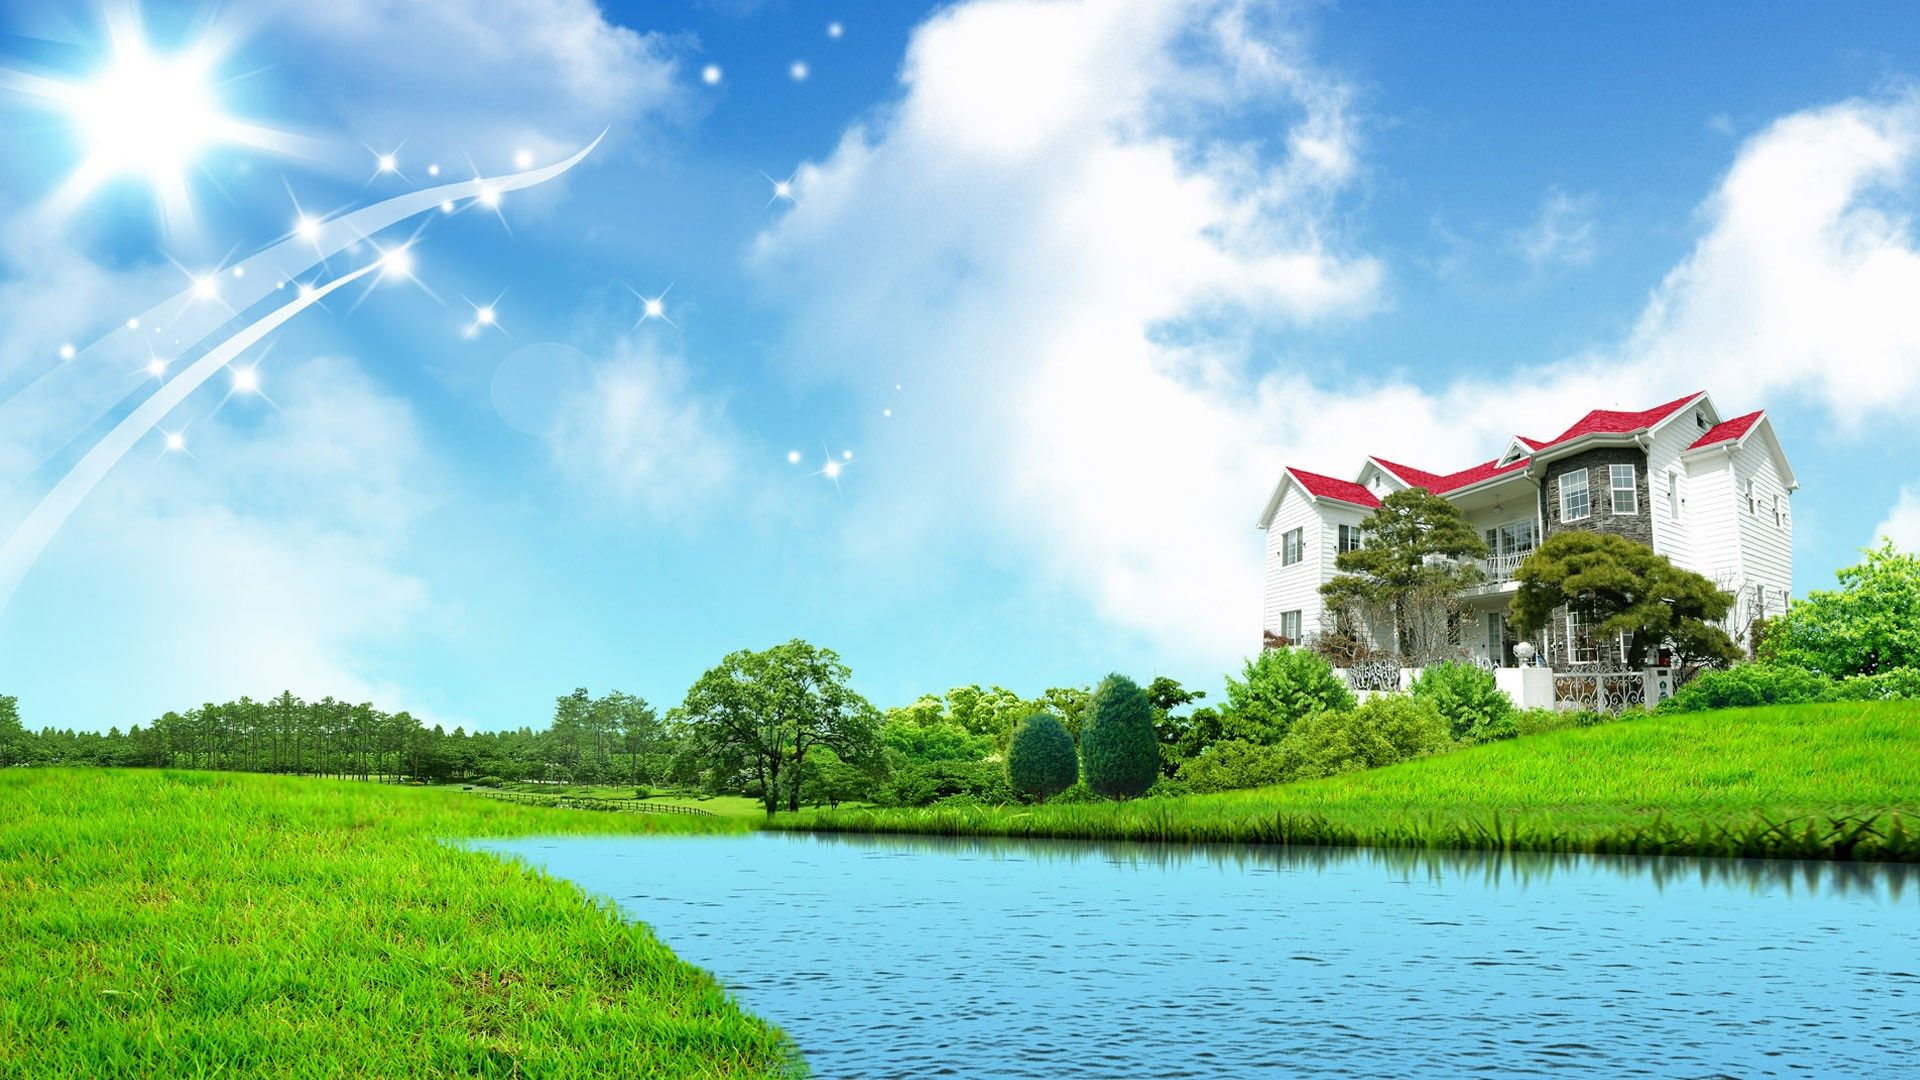 Sweet Home Fantasy Green Nature Wallpapers Hd 1080p 1920x1080 Desktop